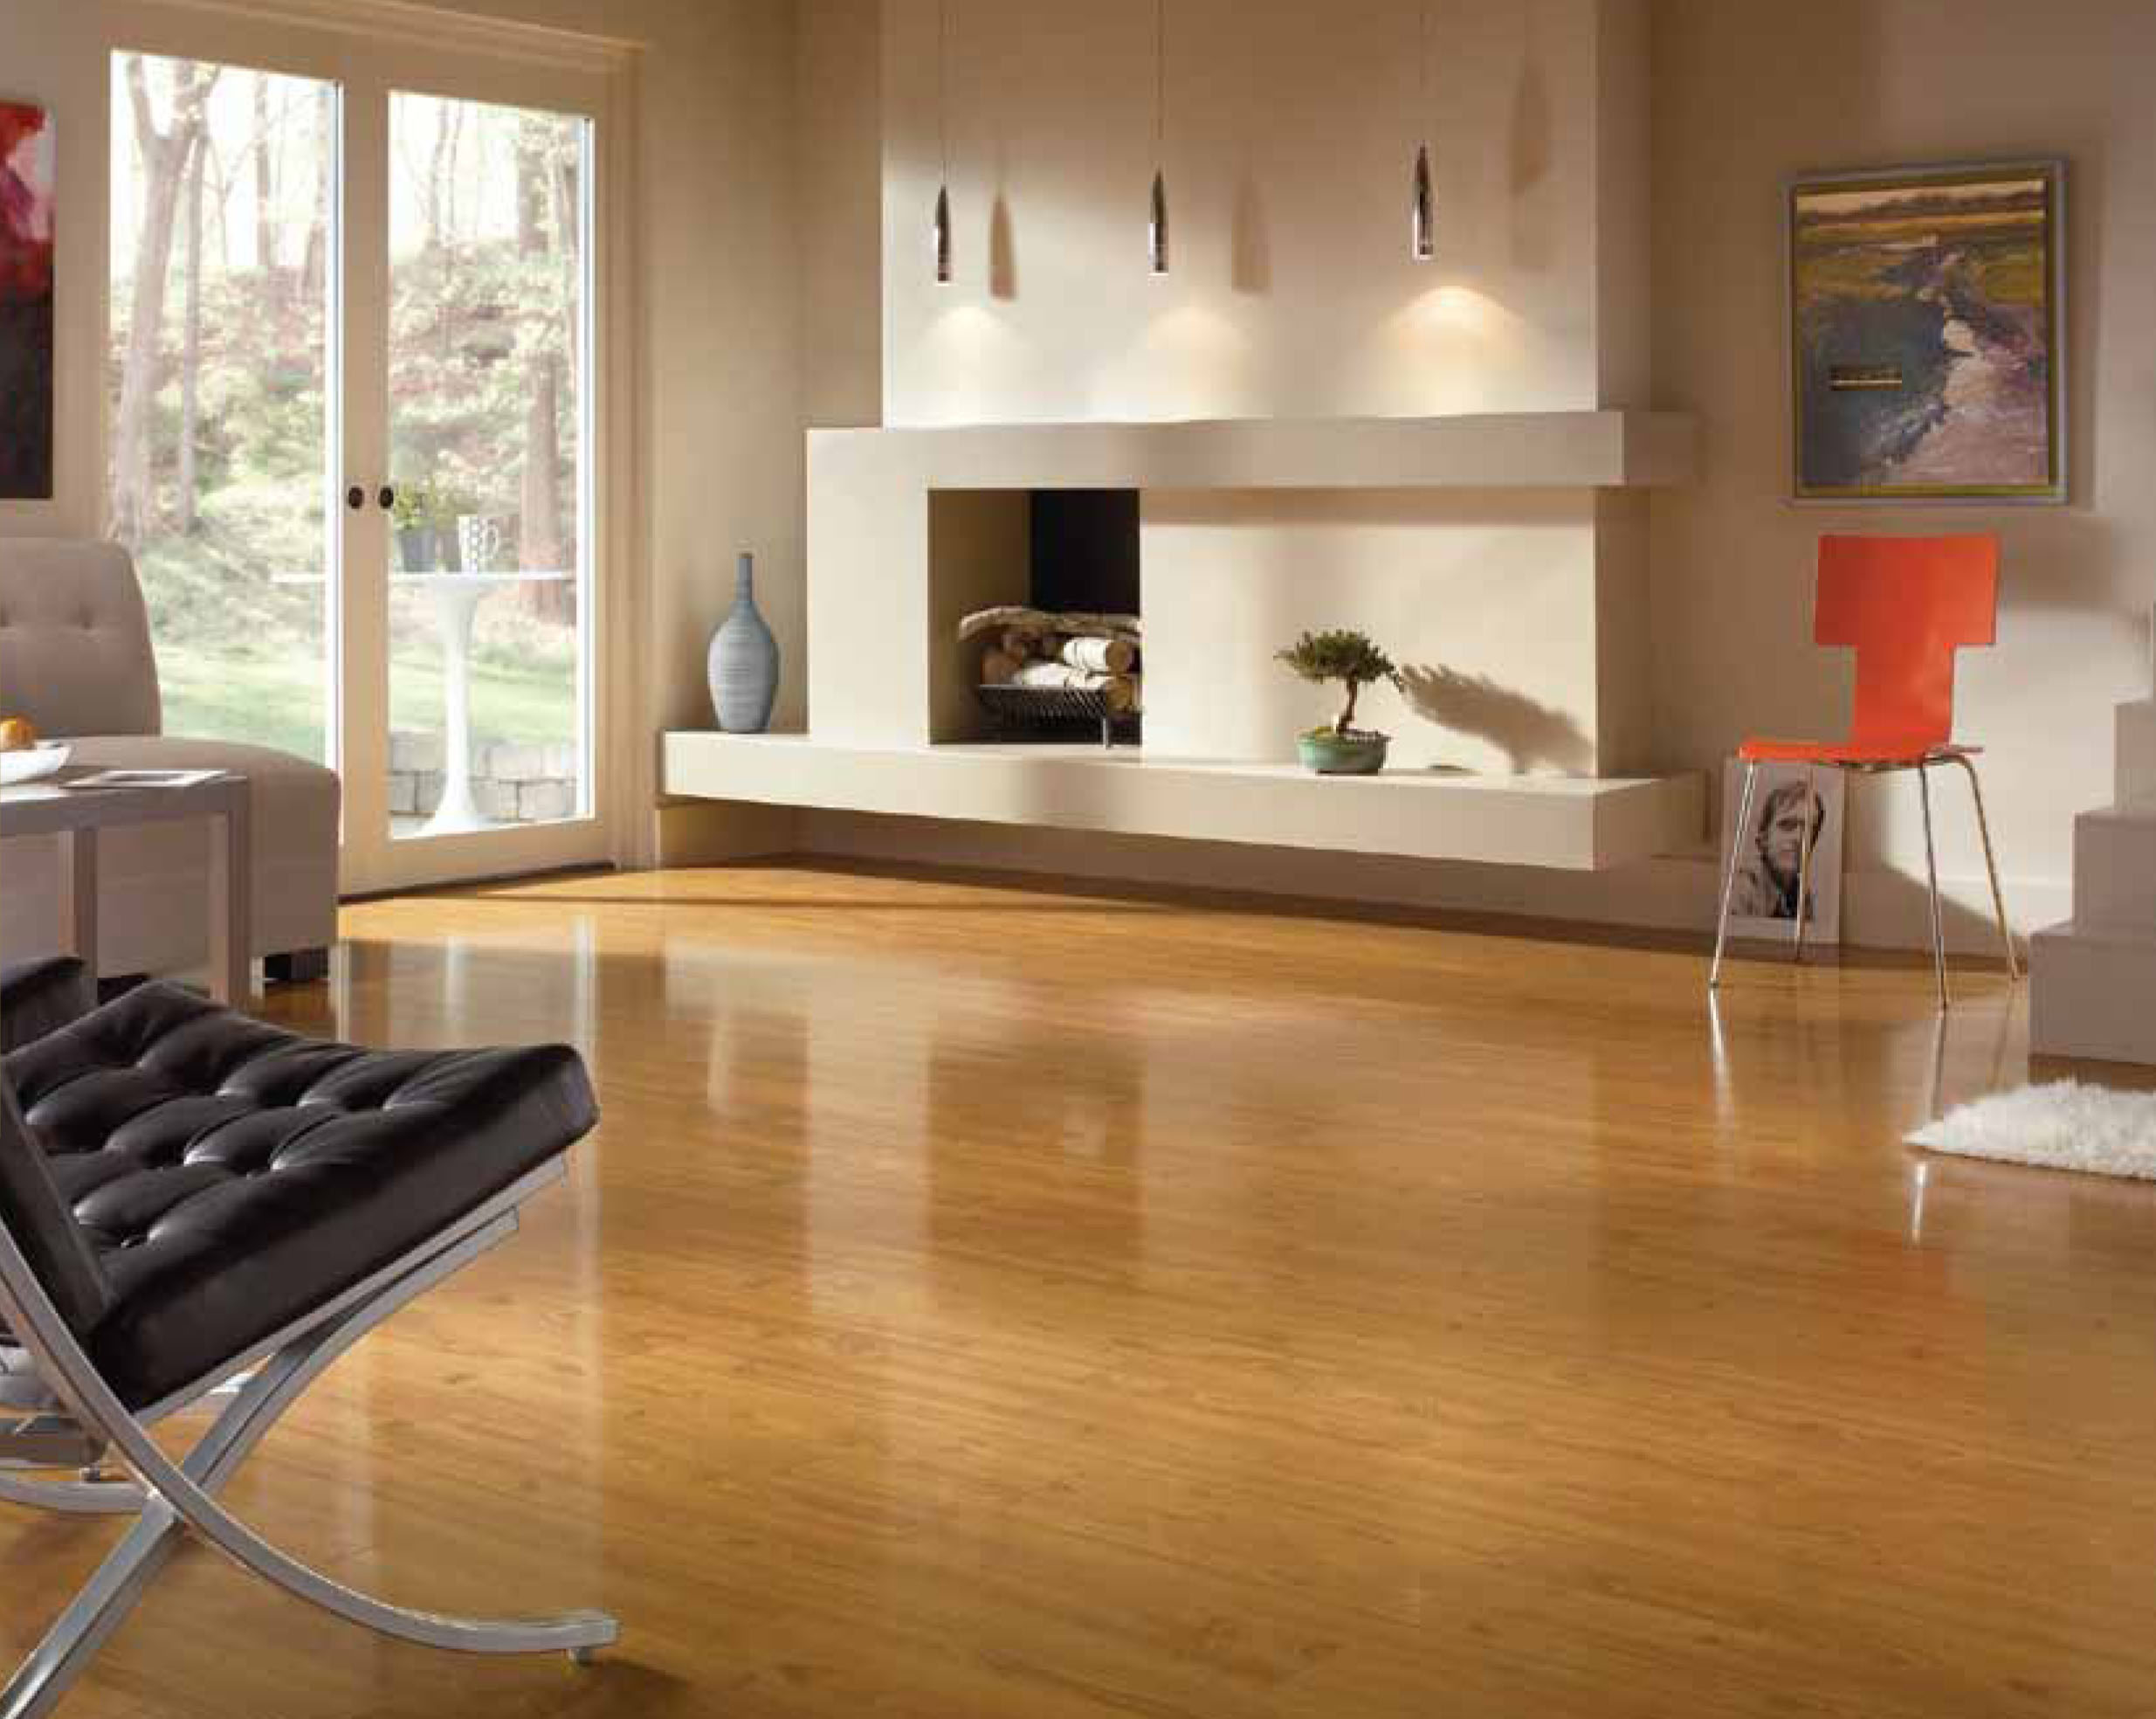 Living room floor tiles design in india gurus floor Which is best tiles for flooring in india